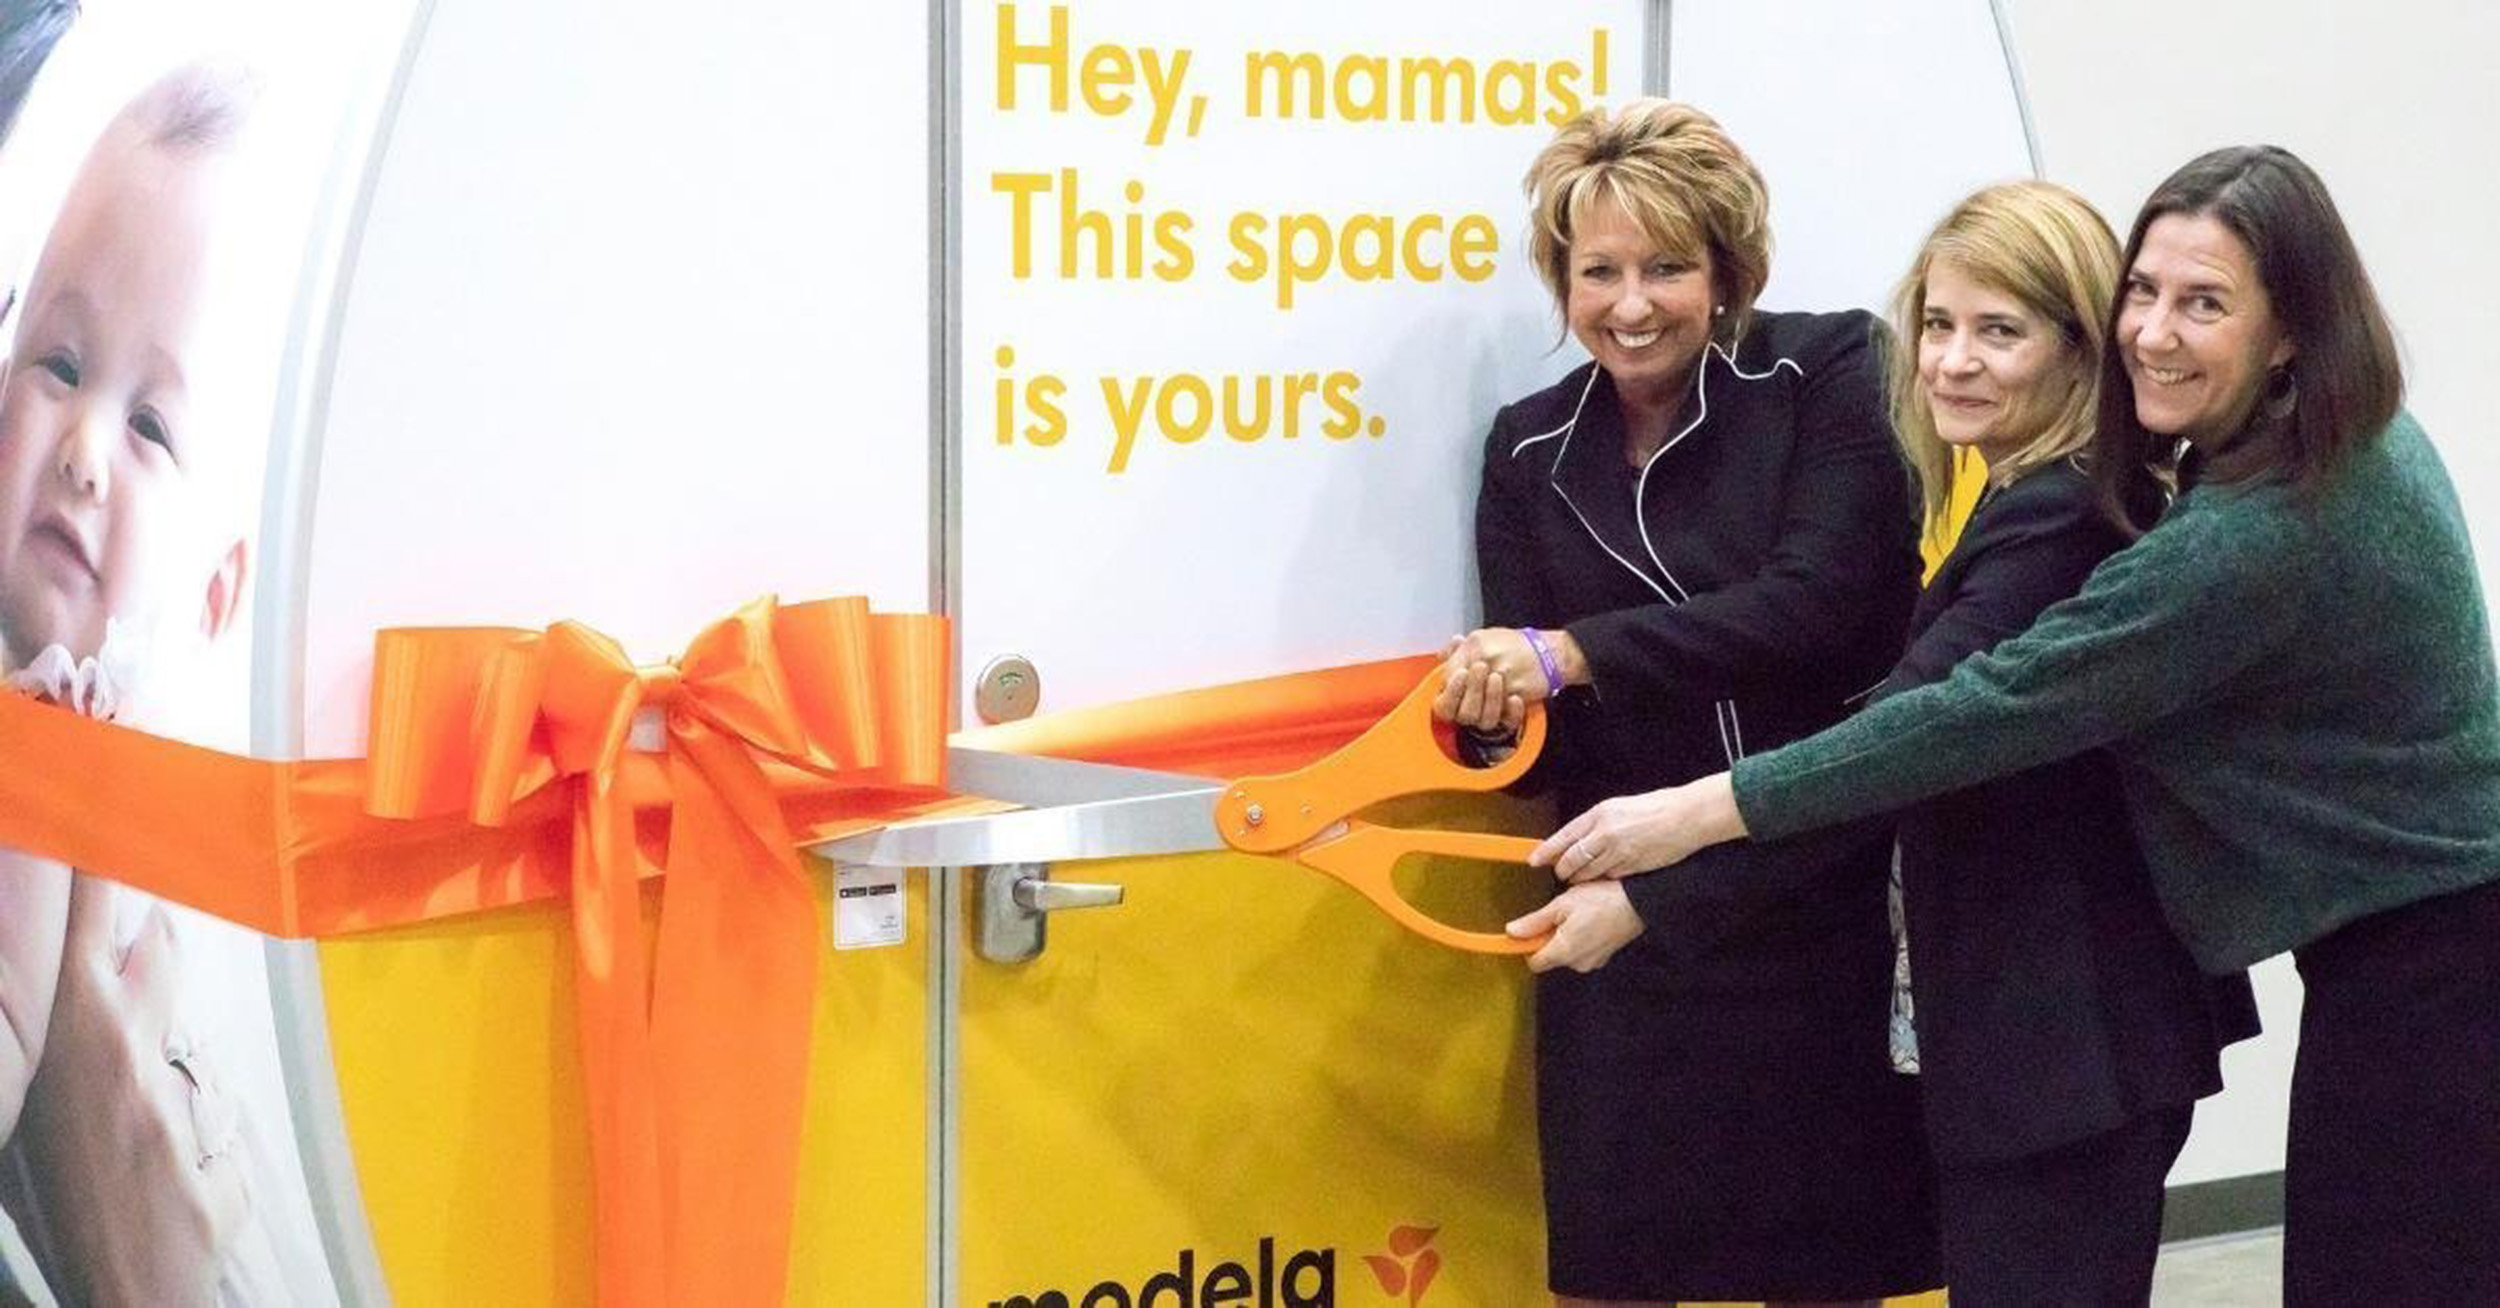 Melissa Gonzales, executive vice president of Americas for Medela LLC was joined by Mamava Co-founders Christine Dodson and Sascha Mayer for a ribbon cutting for the newest Mamava pod, placed at Medela's U.S.-based offices in McHenry, Ill.